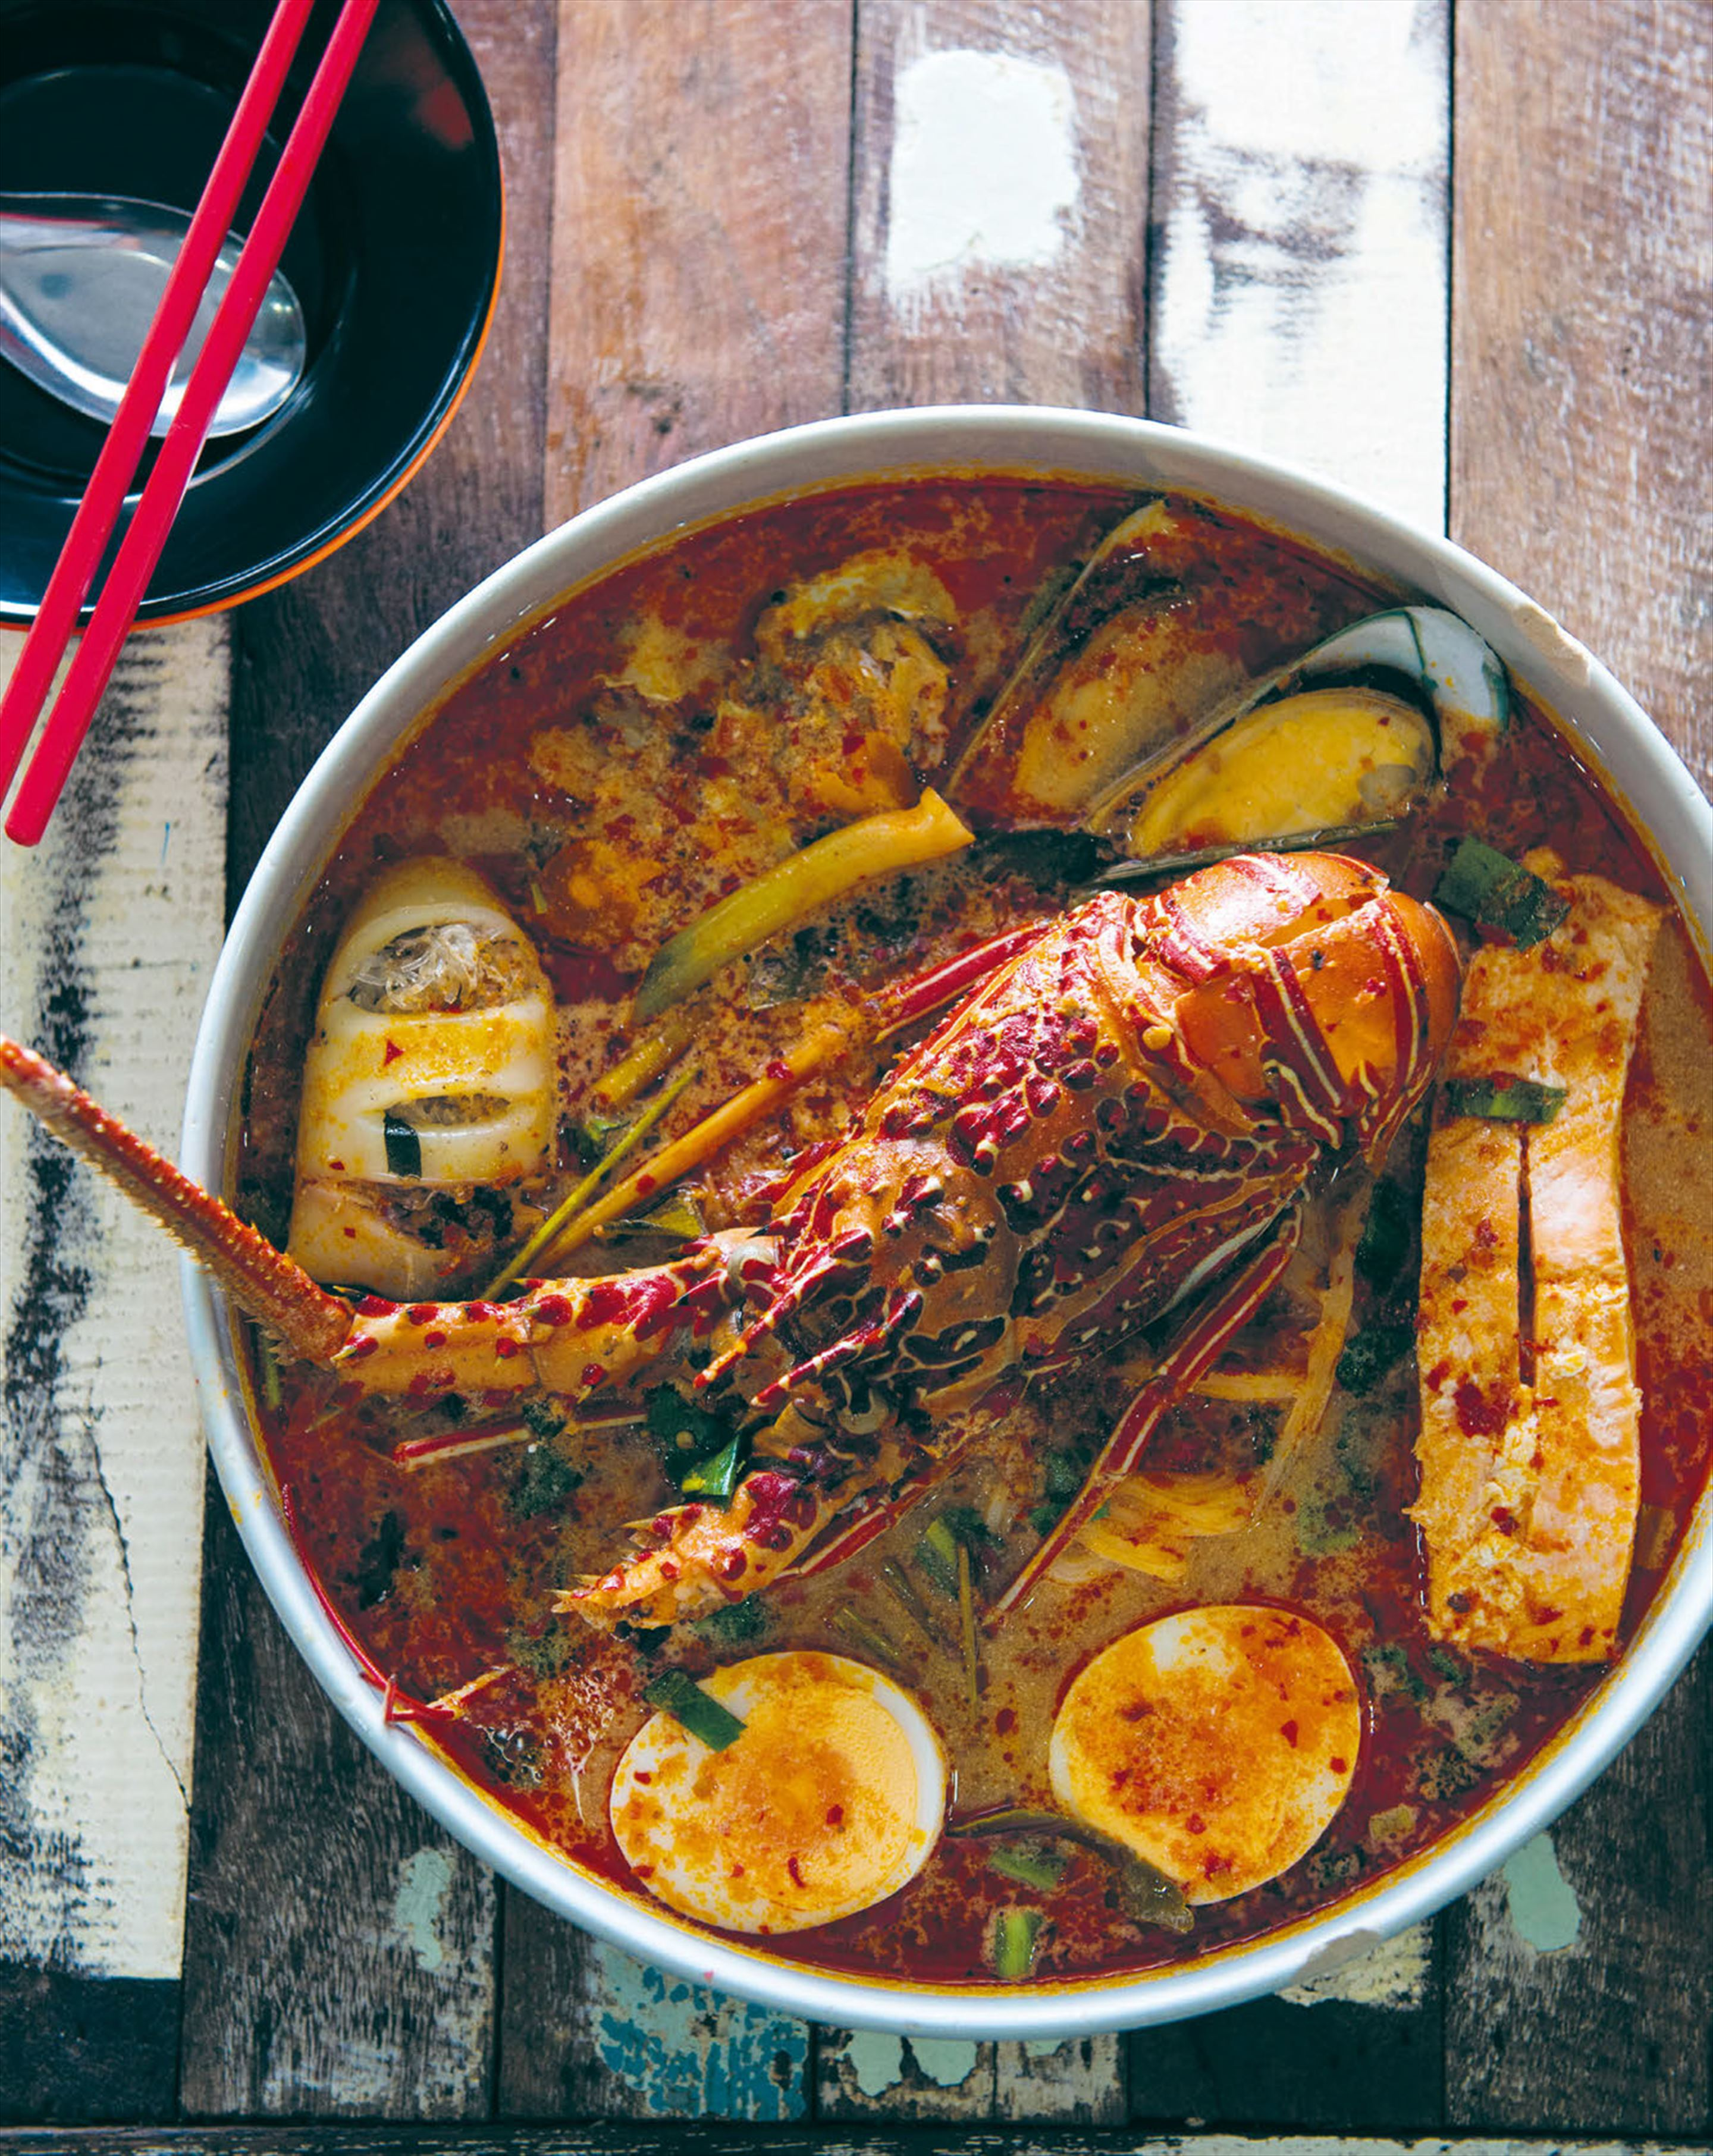 Lobster tom yum